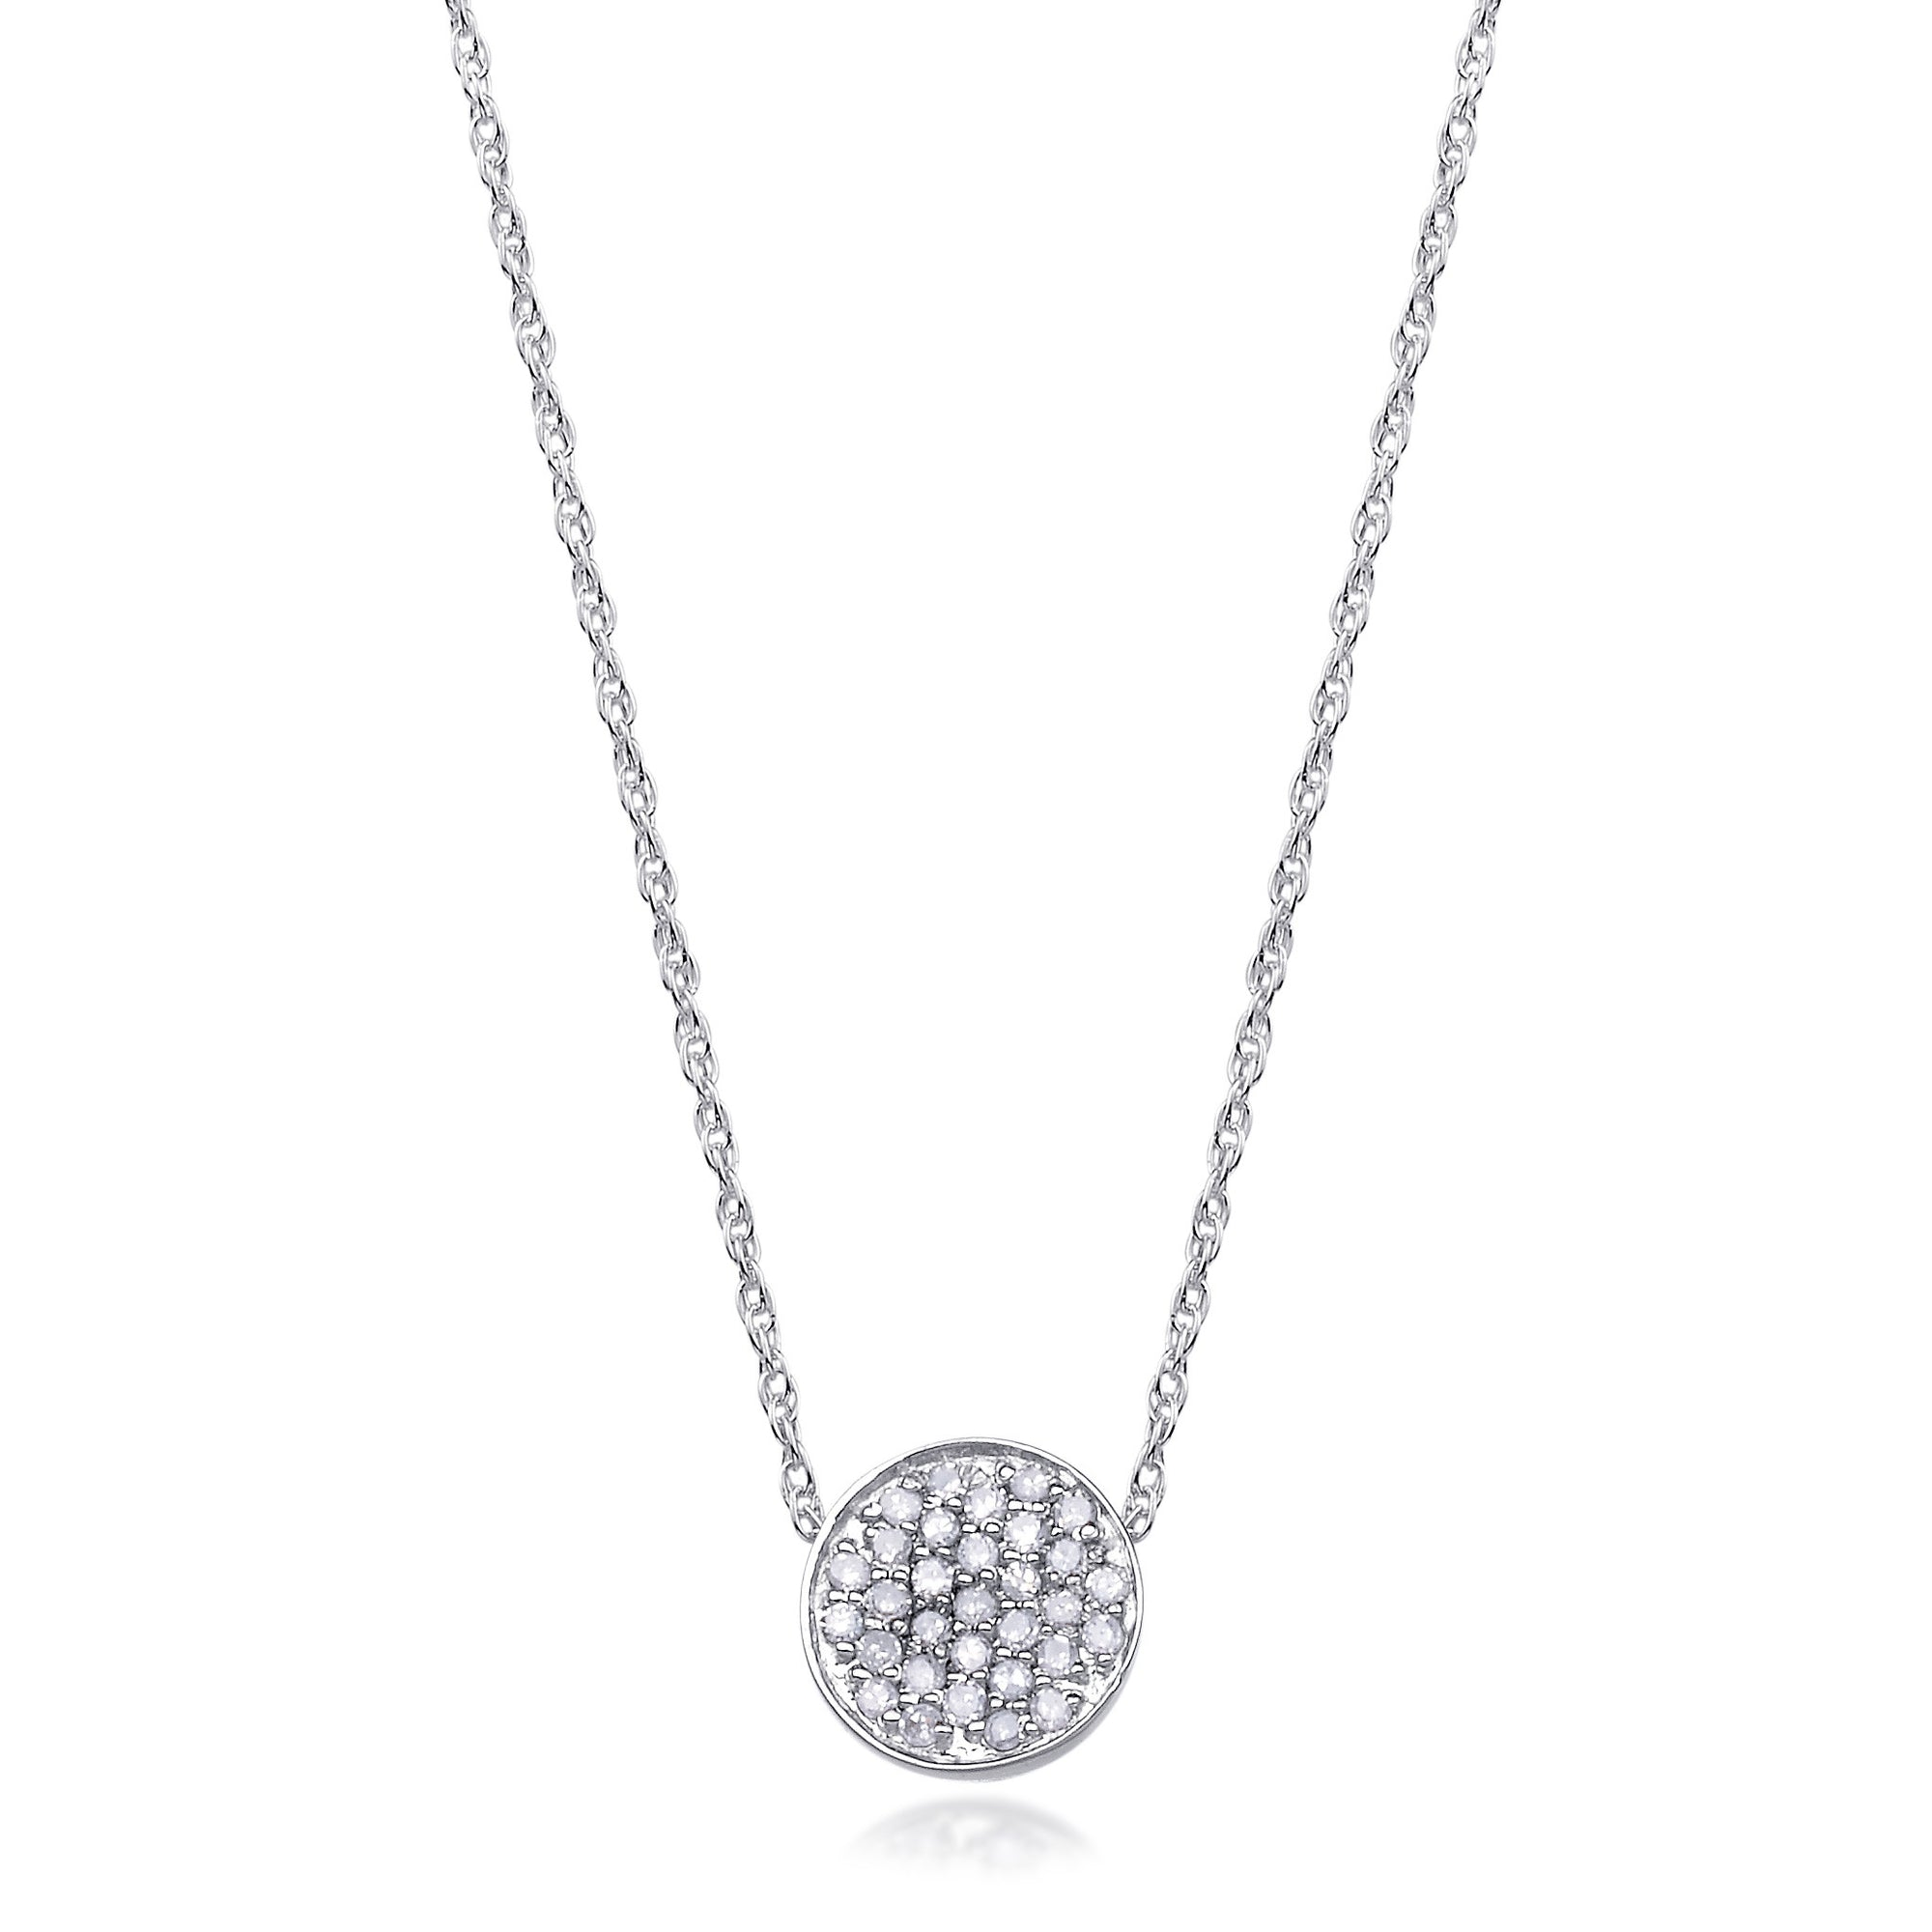 39d75fe123b07 Bling! Diamond Pave Disc Pendant Necklace in White Gold